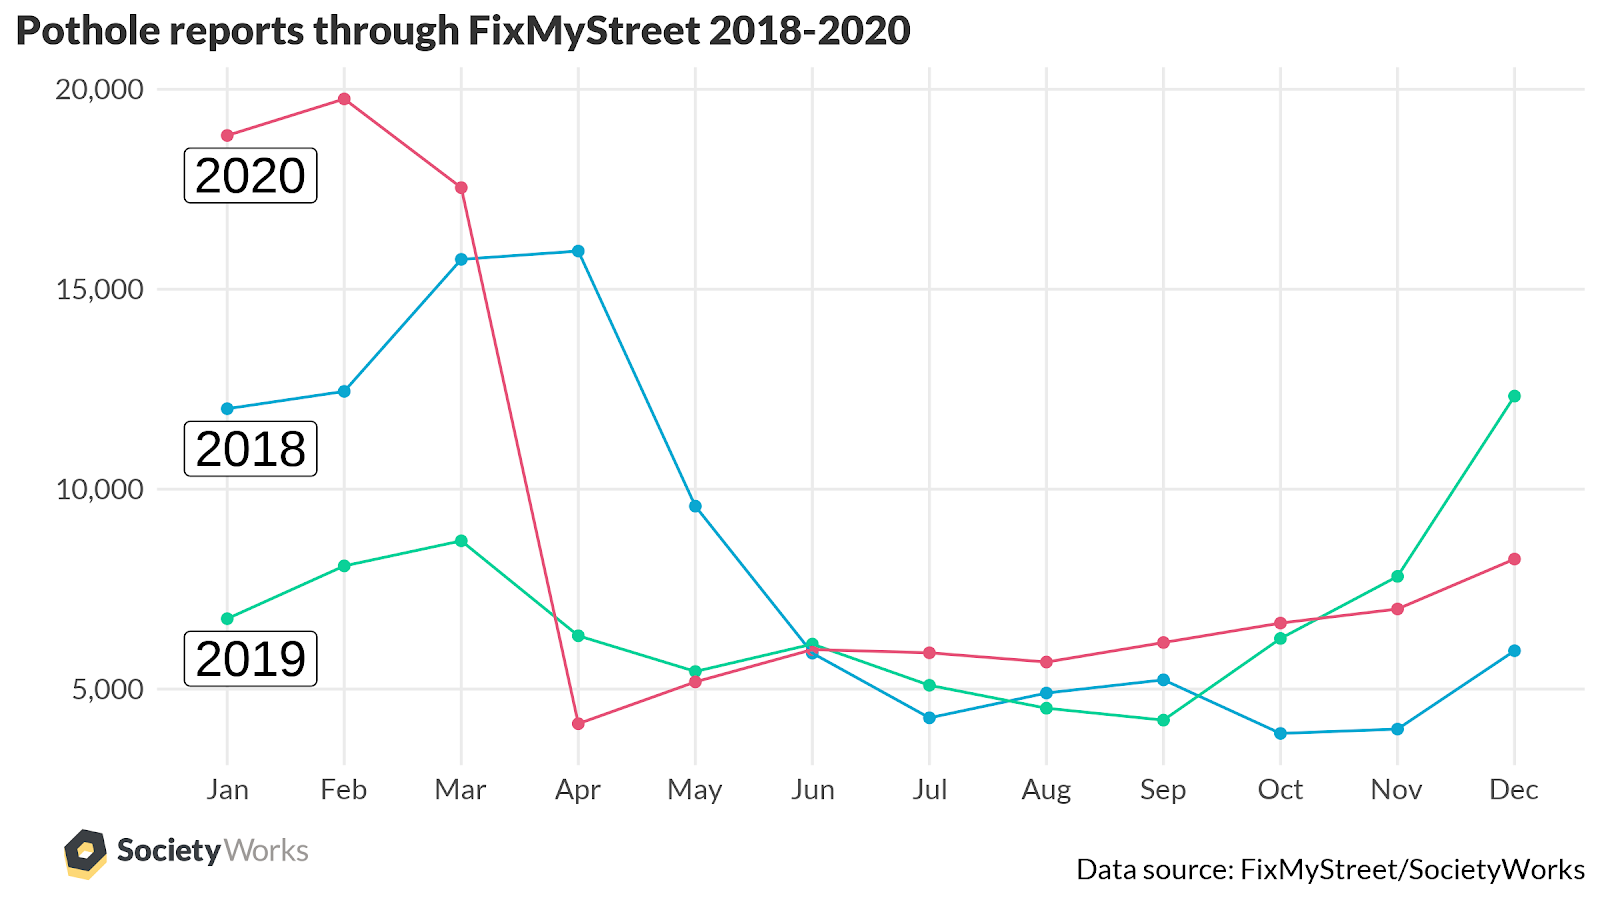 Graph showing pothole reports made through FixMyStreet in 2020